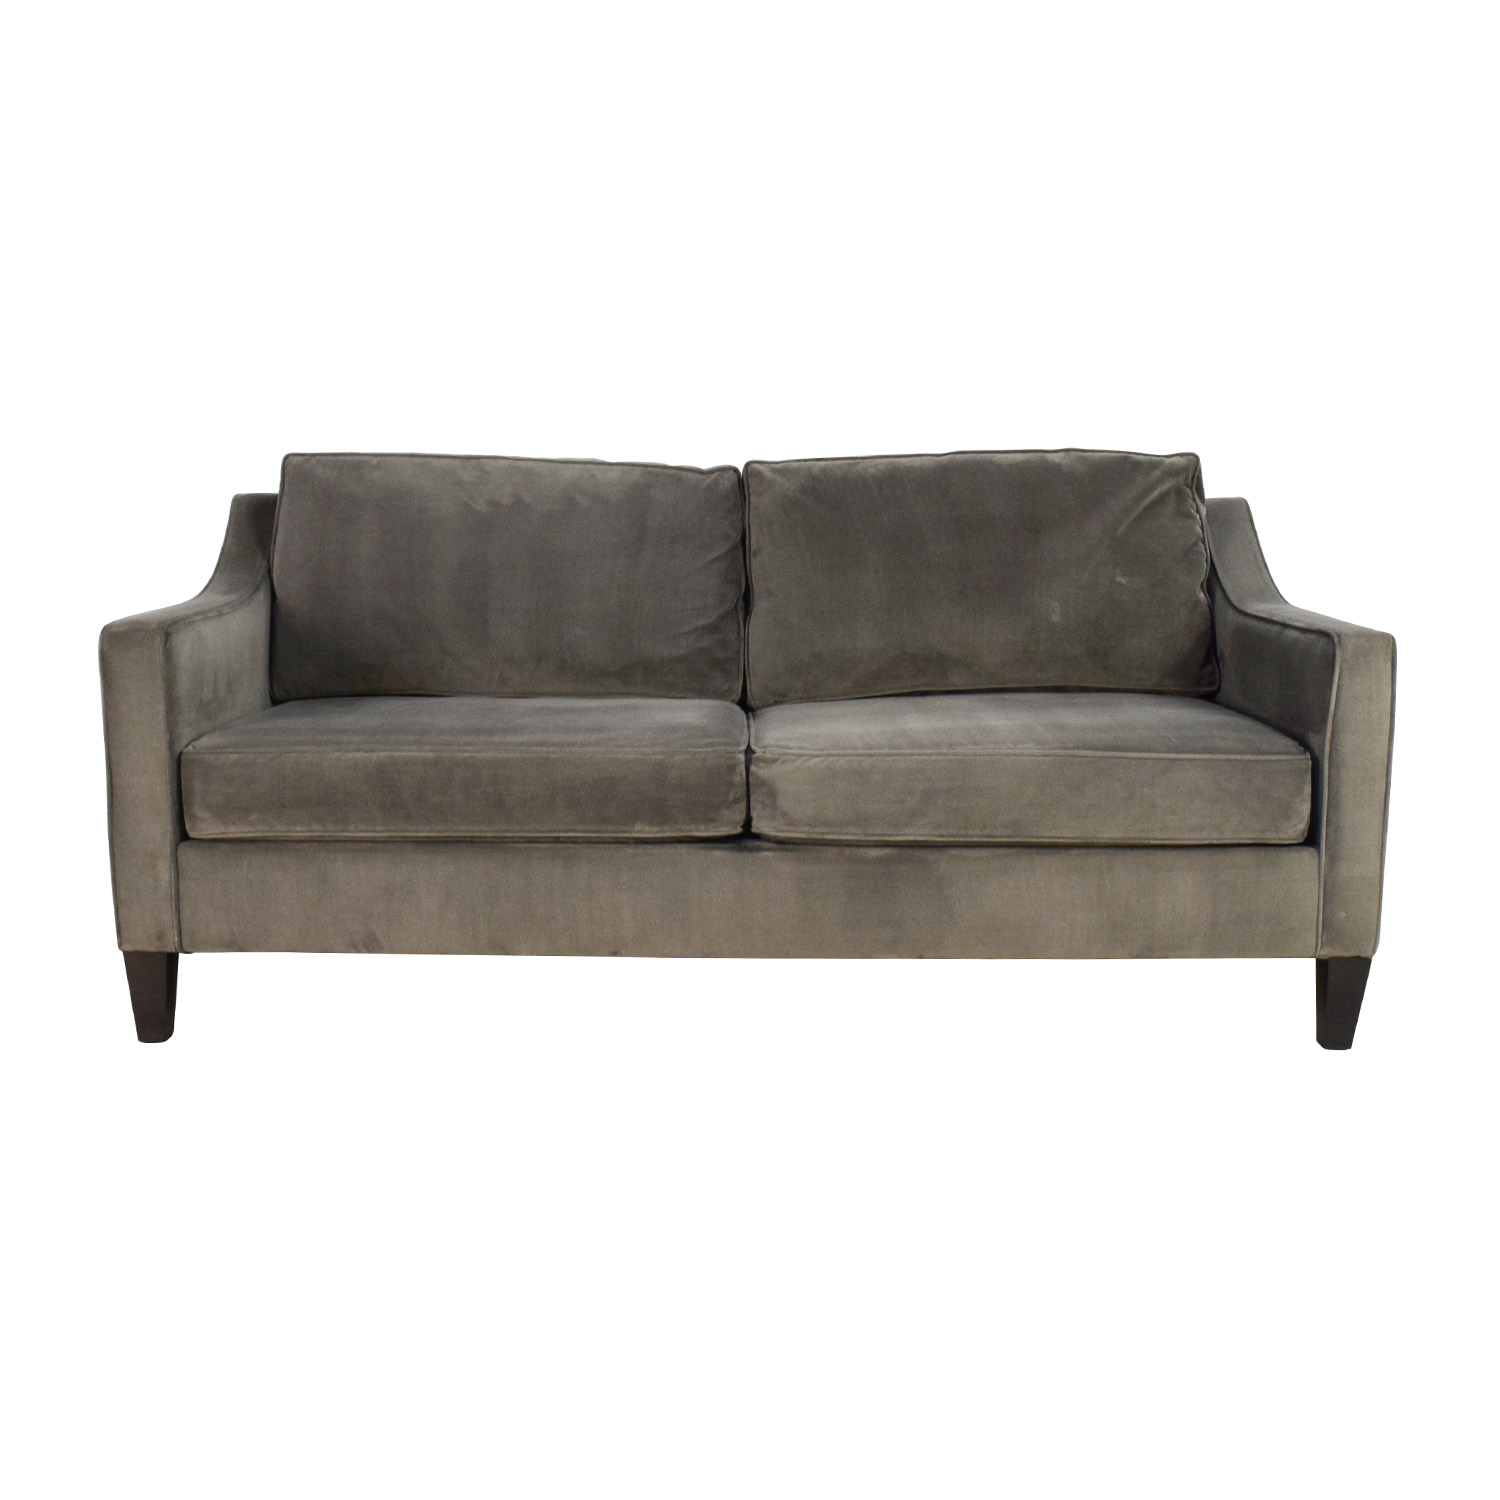 westelm sofa bed repair and upholstery 56 off west elm paidge sofas